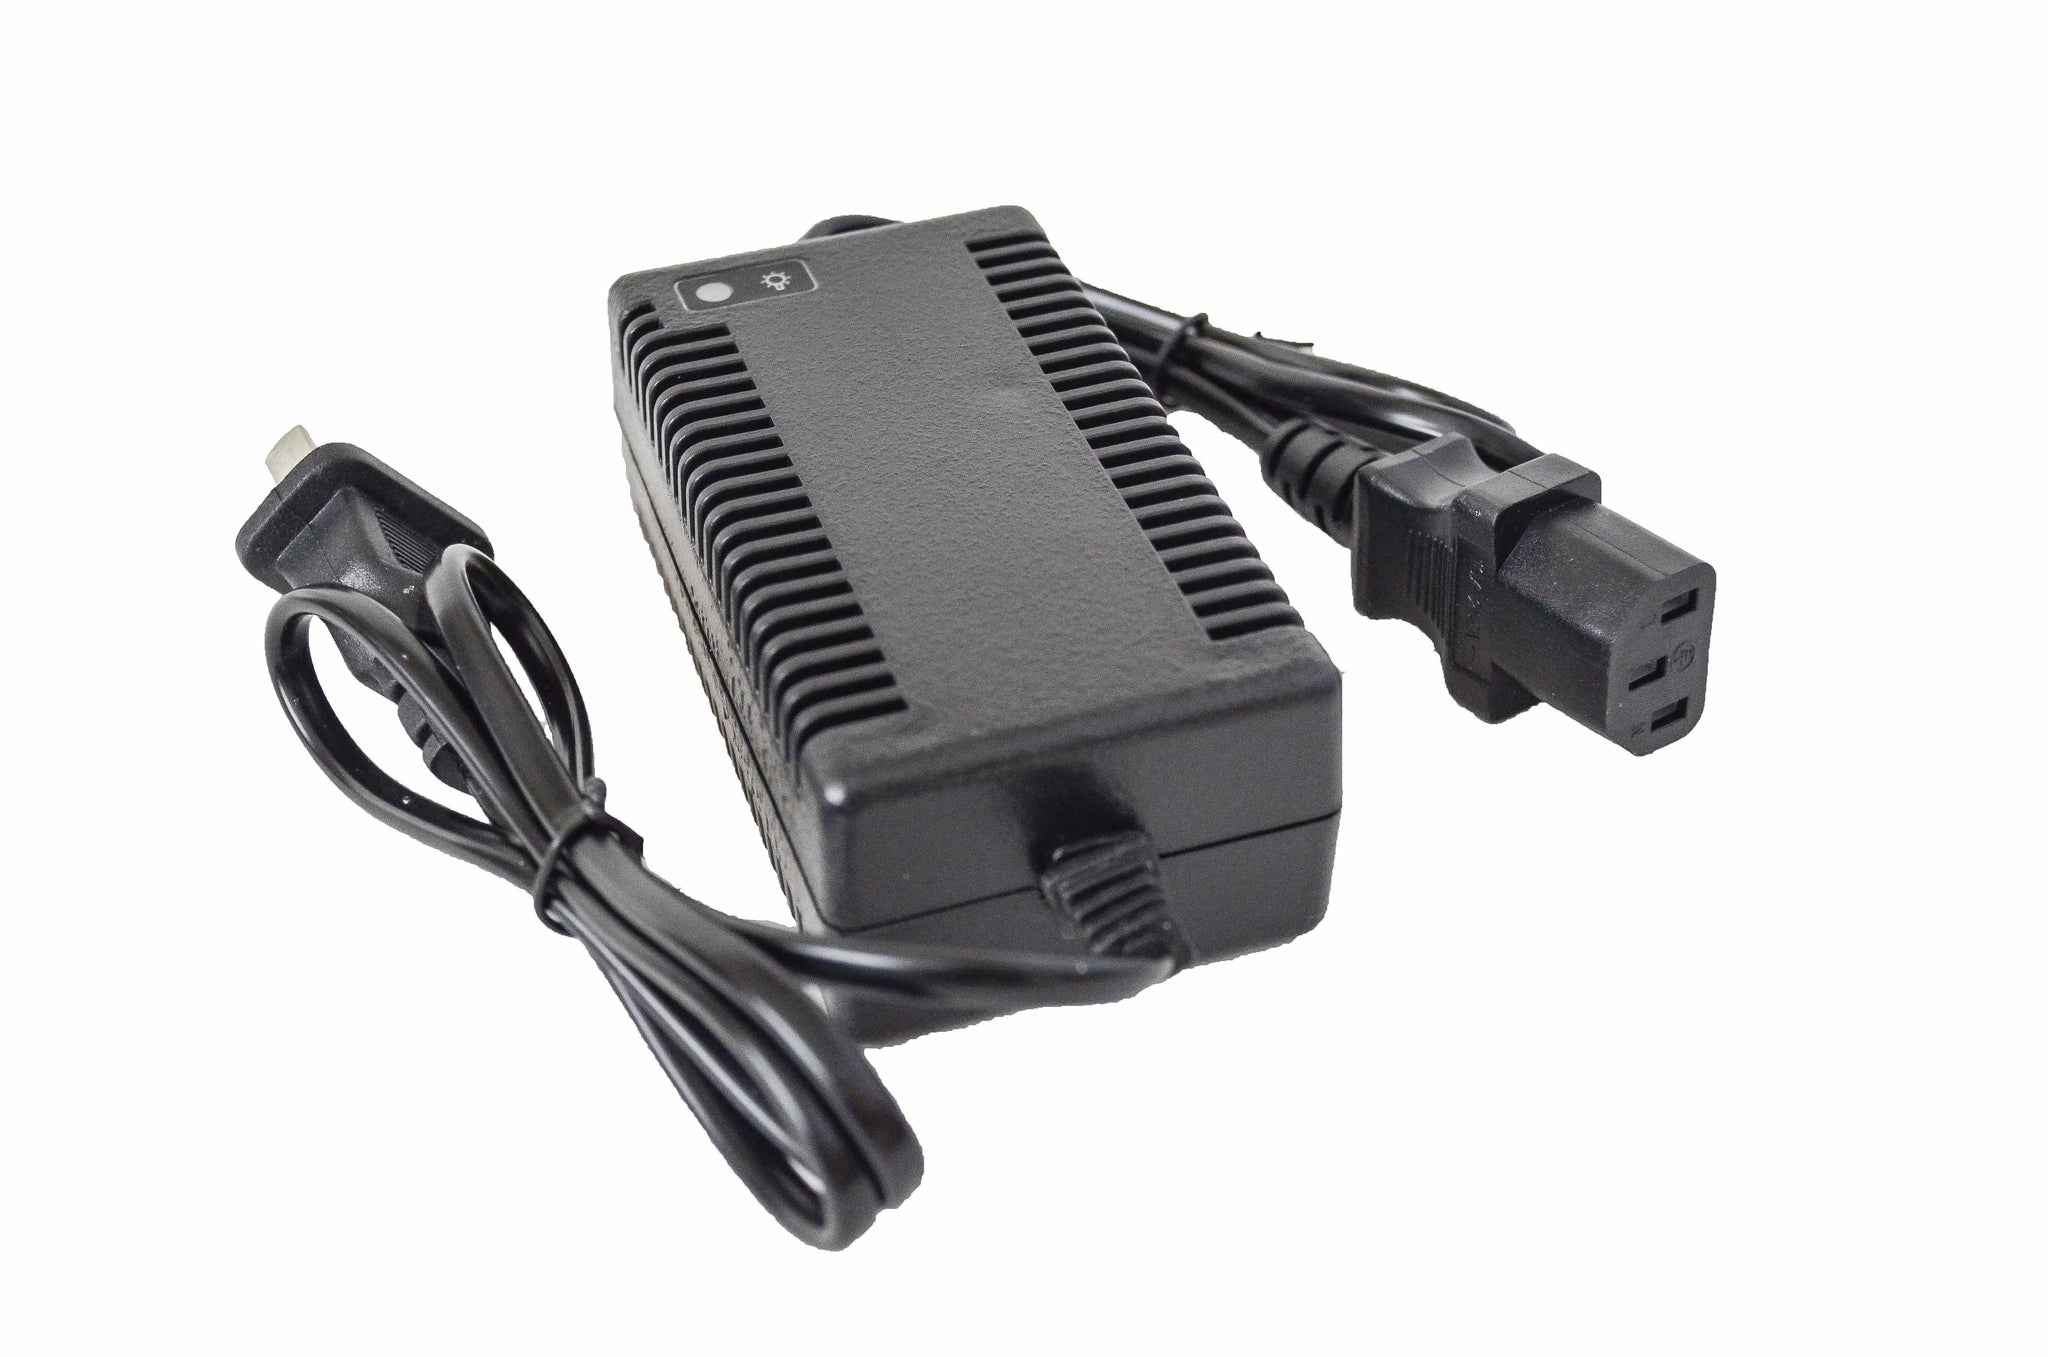 Automatic Battery Charger For White Tank M4 (Does Not Fit Blue Tank M4) $14.99